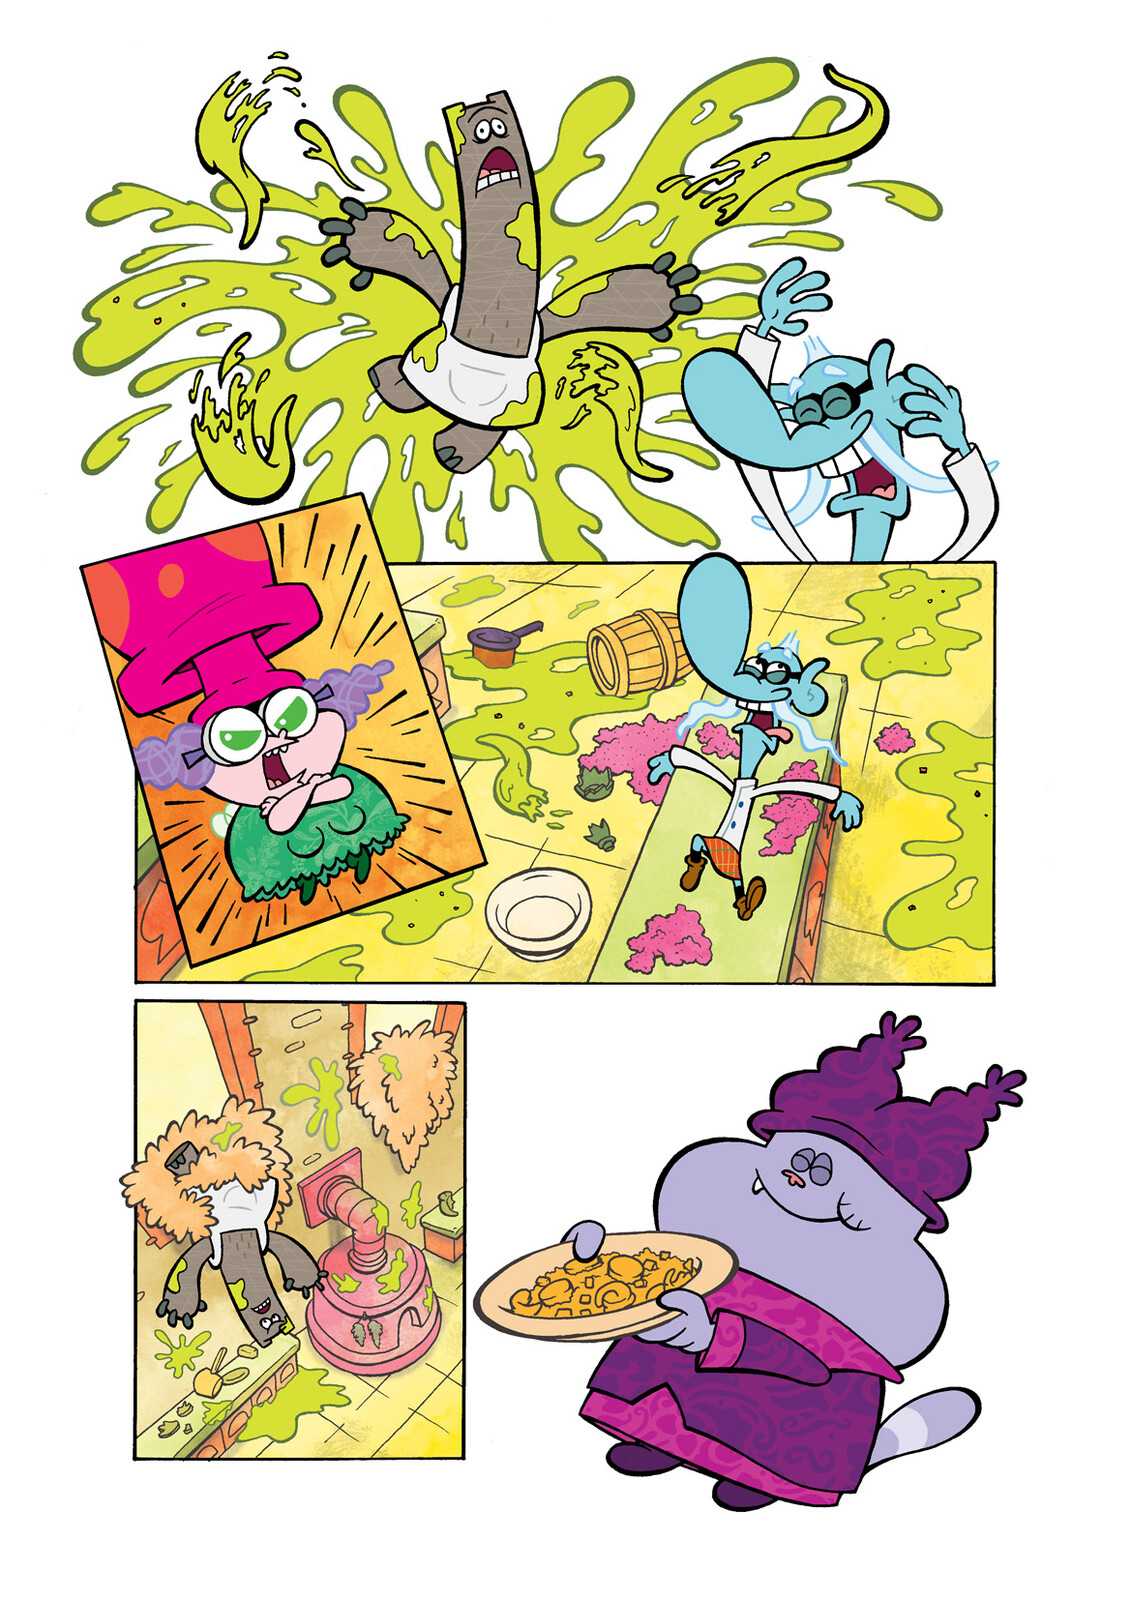 'Chowder' comic page excerpt for Skyjack Publishing.